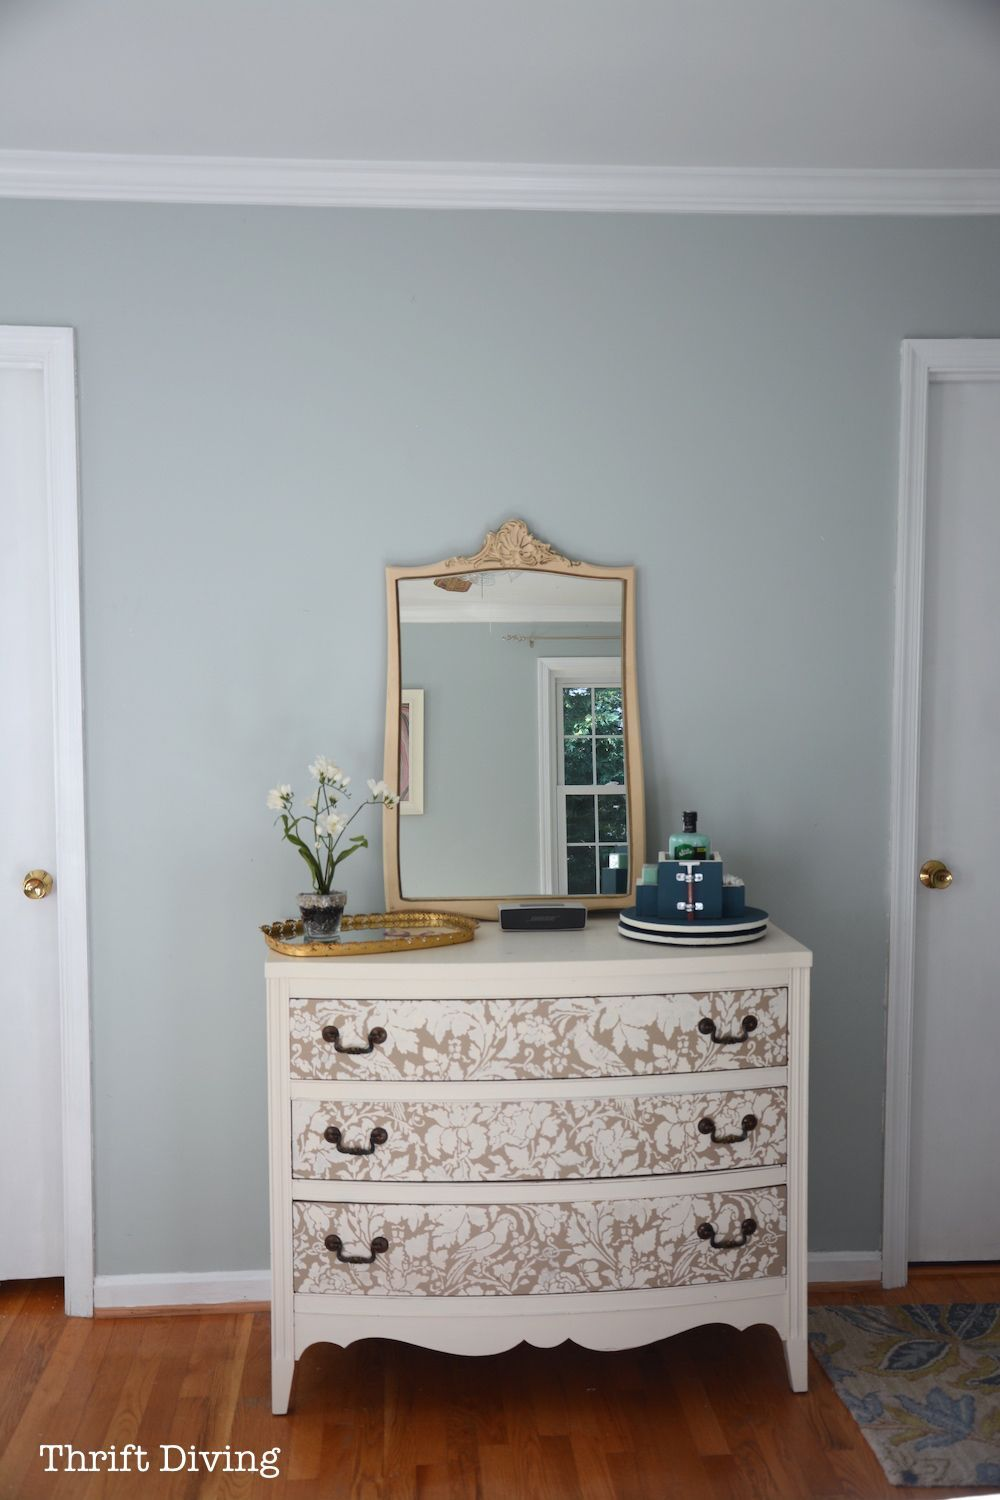 Joanna gaines master bedroom paint colors  Sherwin Williams Rainwashed is the most beautiful color for a home